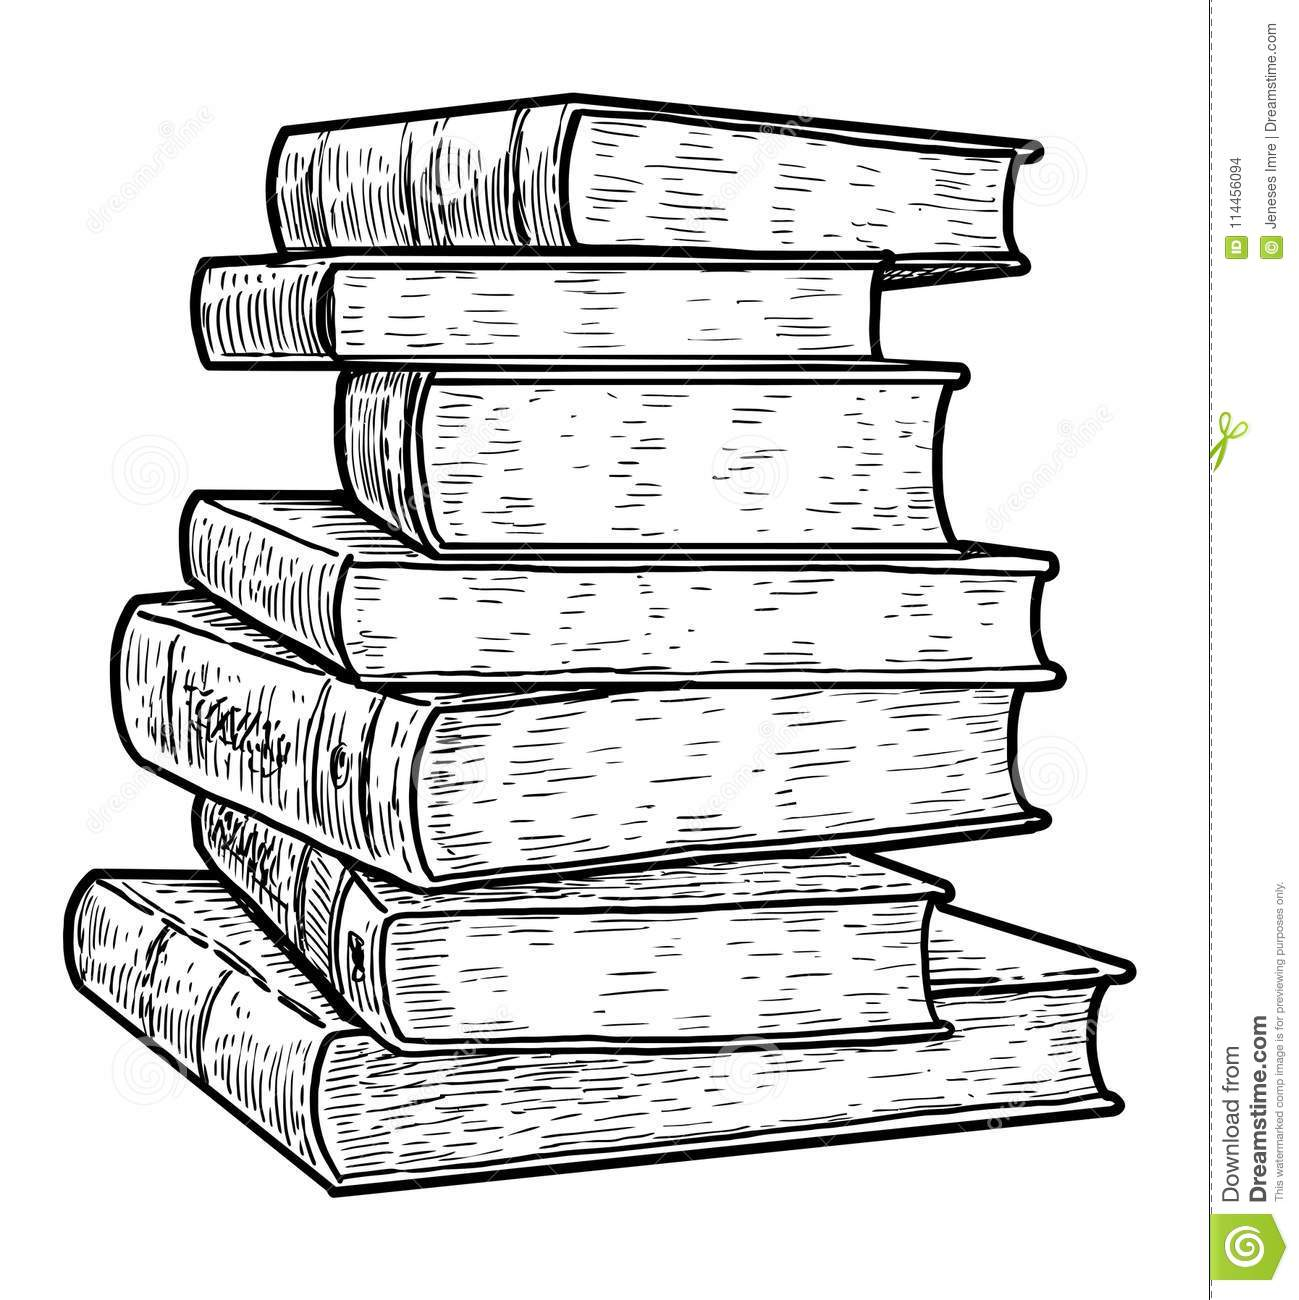 Contour Line Drawing Books : Stack of books illustration drawing engraving ink line